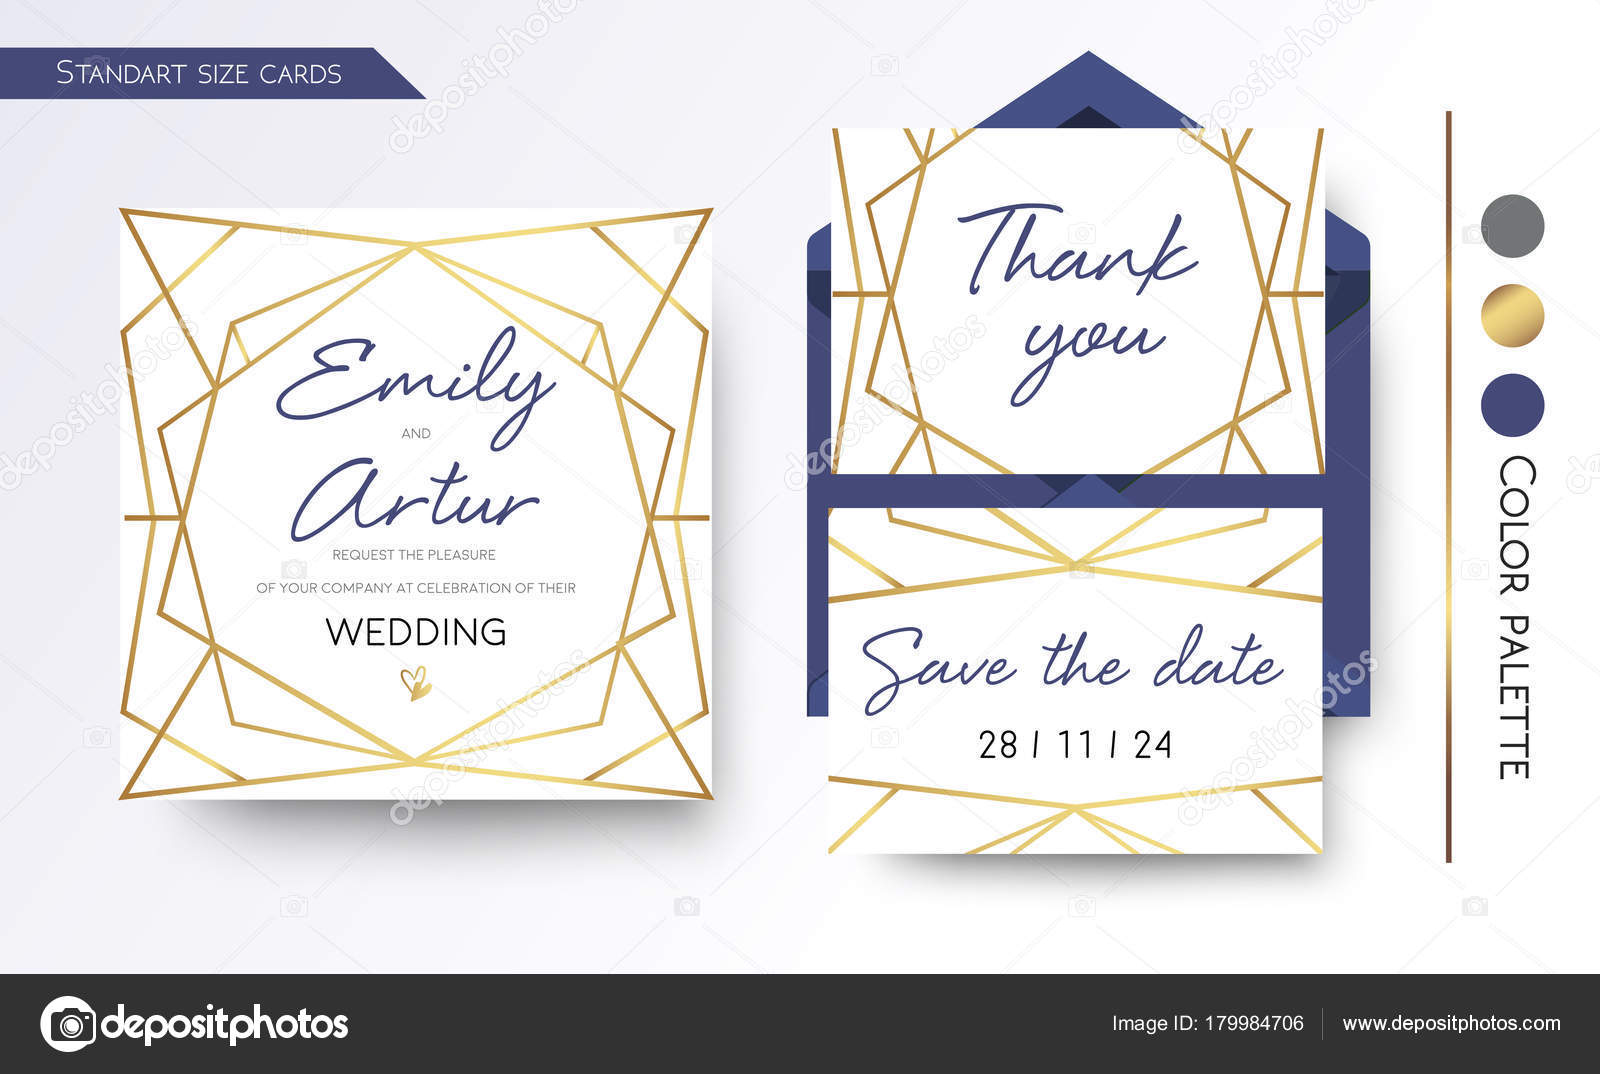 3b22a70fc57d0 Wedding Invitation, save the date, thank you invite card design with ...